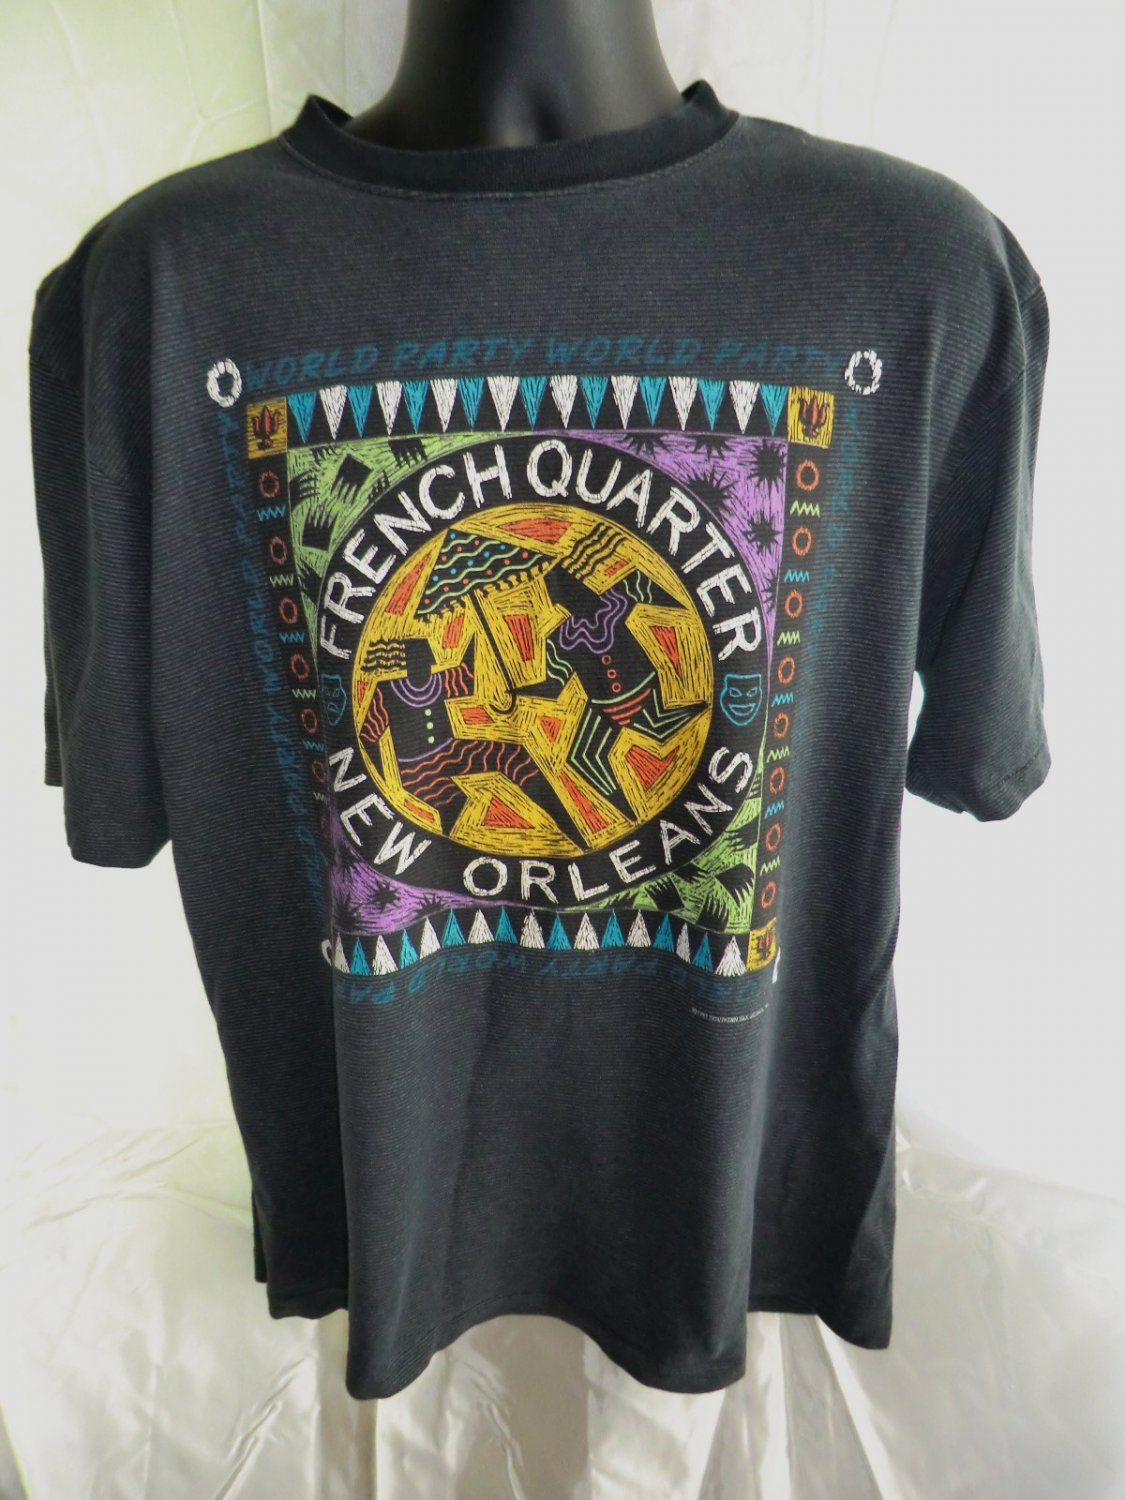 Vintage 1991 New Orleans French Quarter T-Shirt Size XL